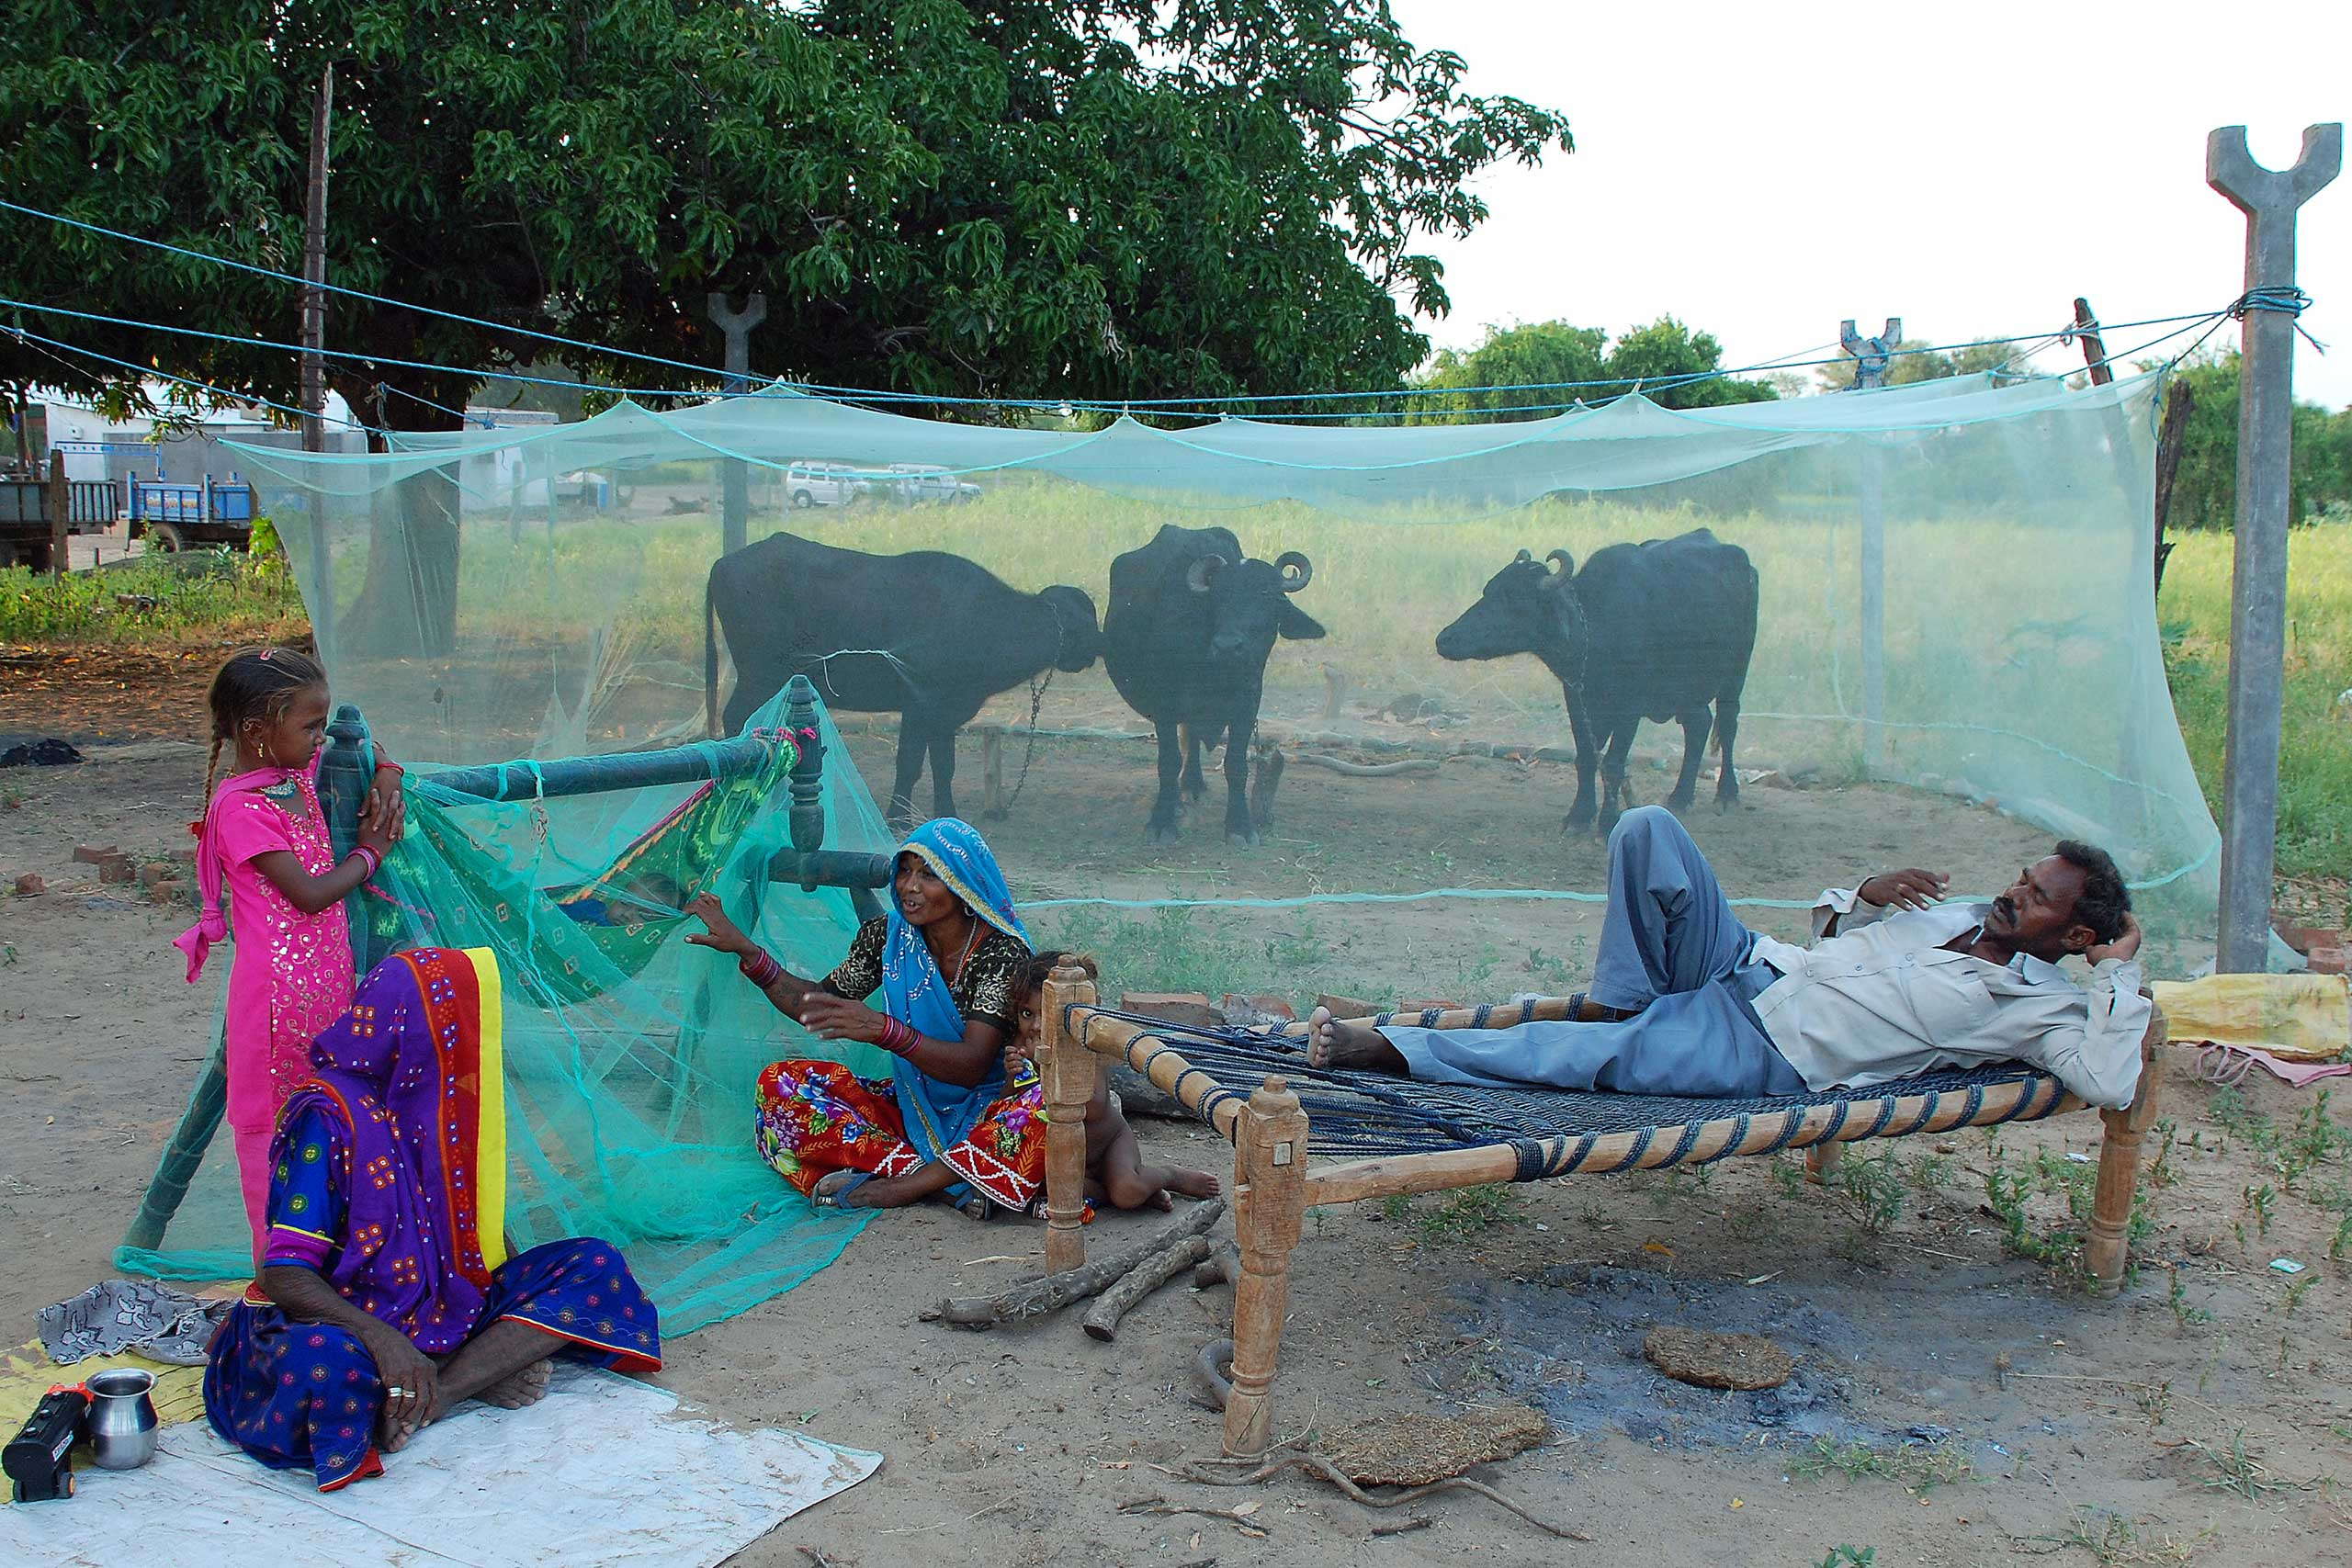 A farmer protects his family and animals from mosquitos in Gujarat, India.